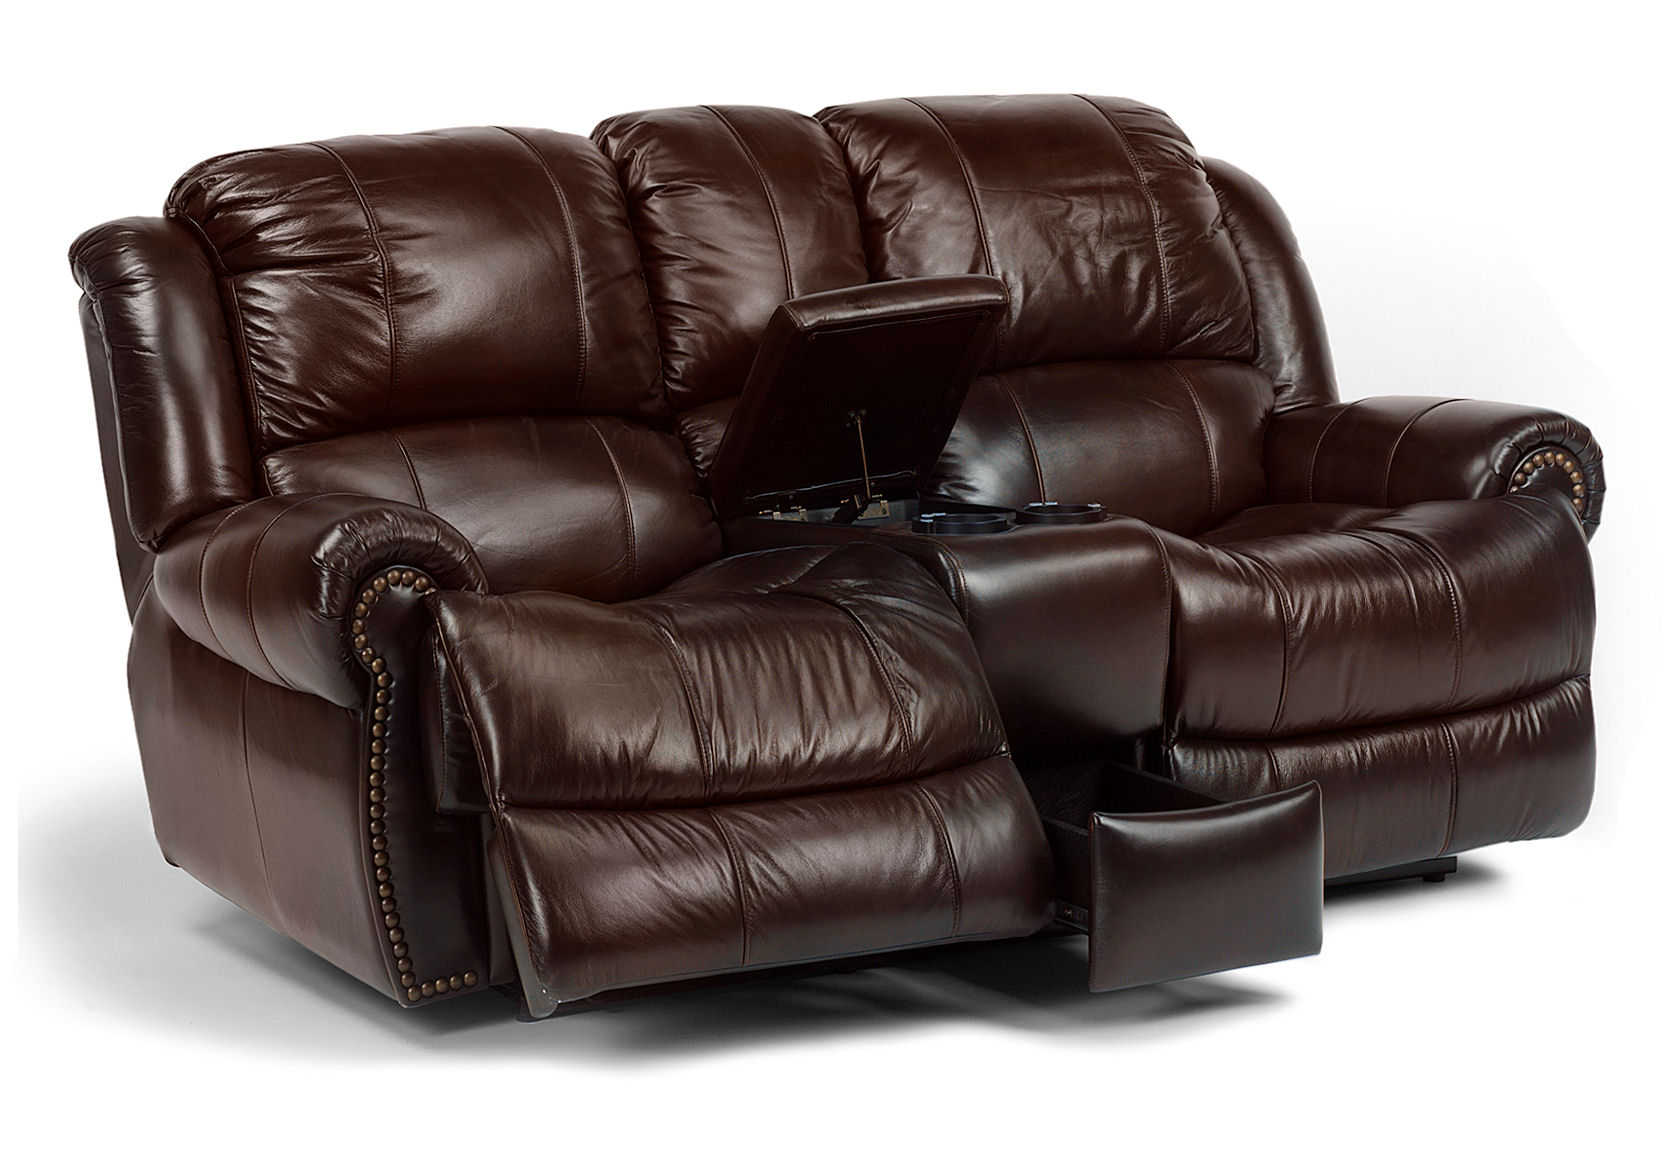 If you re looking for flexsteel be sure to check our prices joel jones home furnishings Leather loveseat recliners